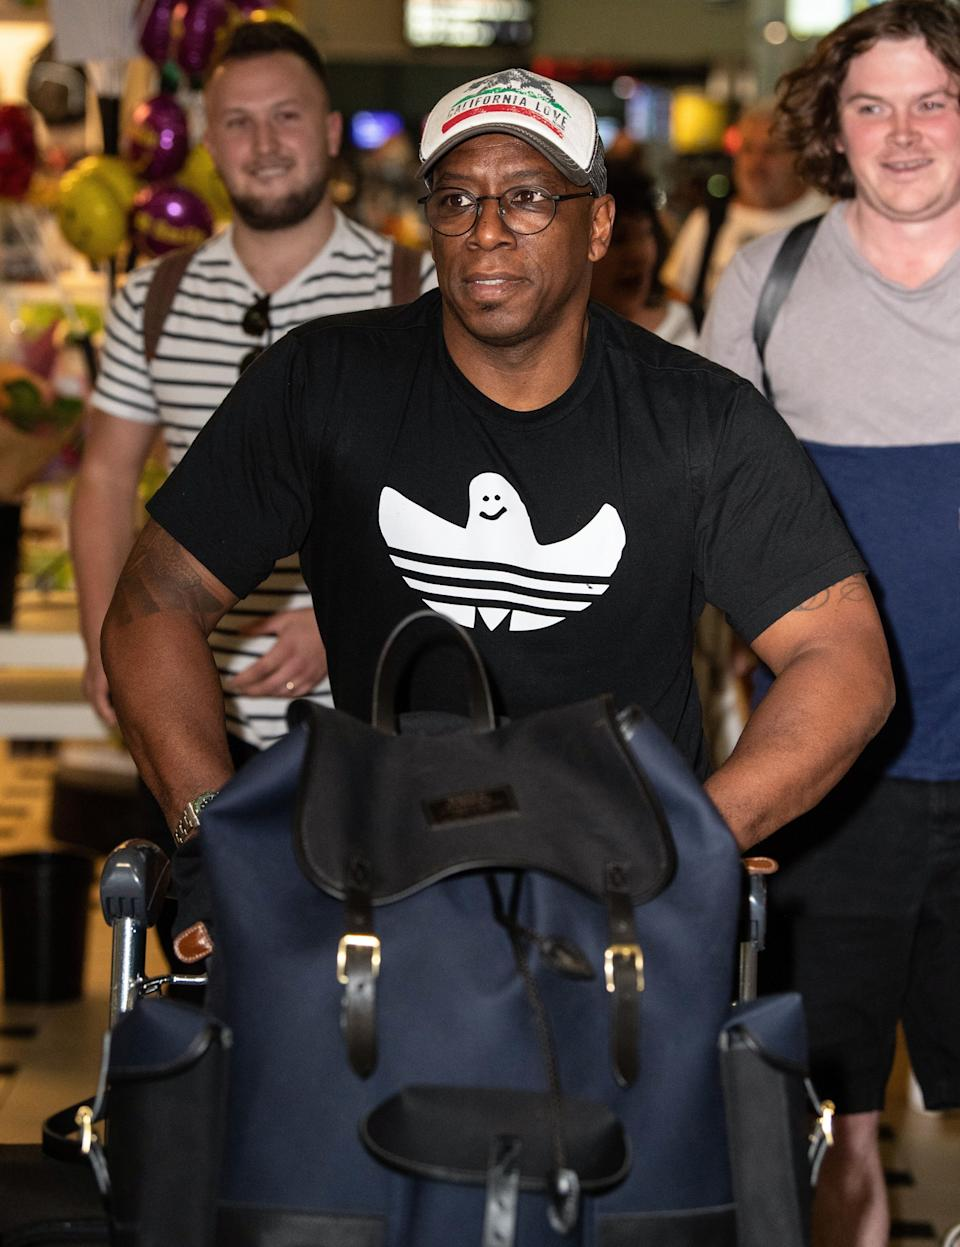 Ian Wright was also pictured after landing Down Under (Photo: James Gourley/ITV/Shutterstock)